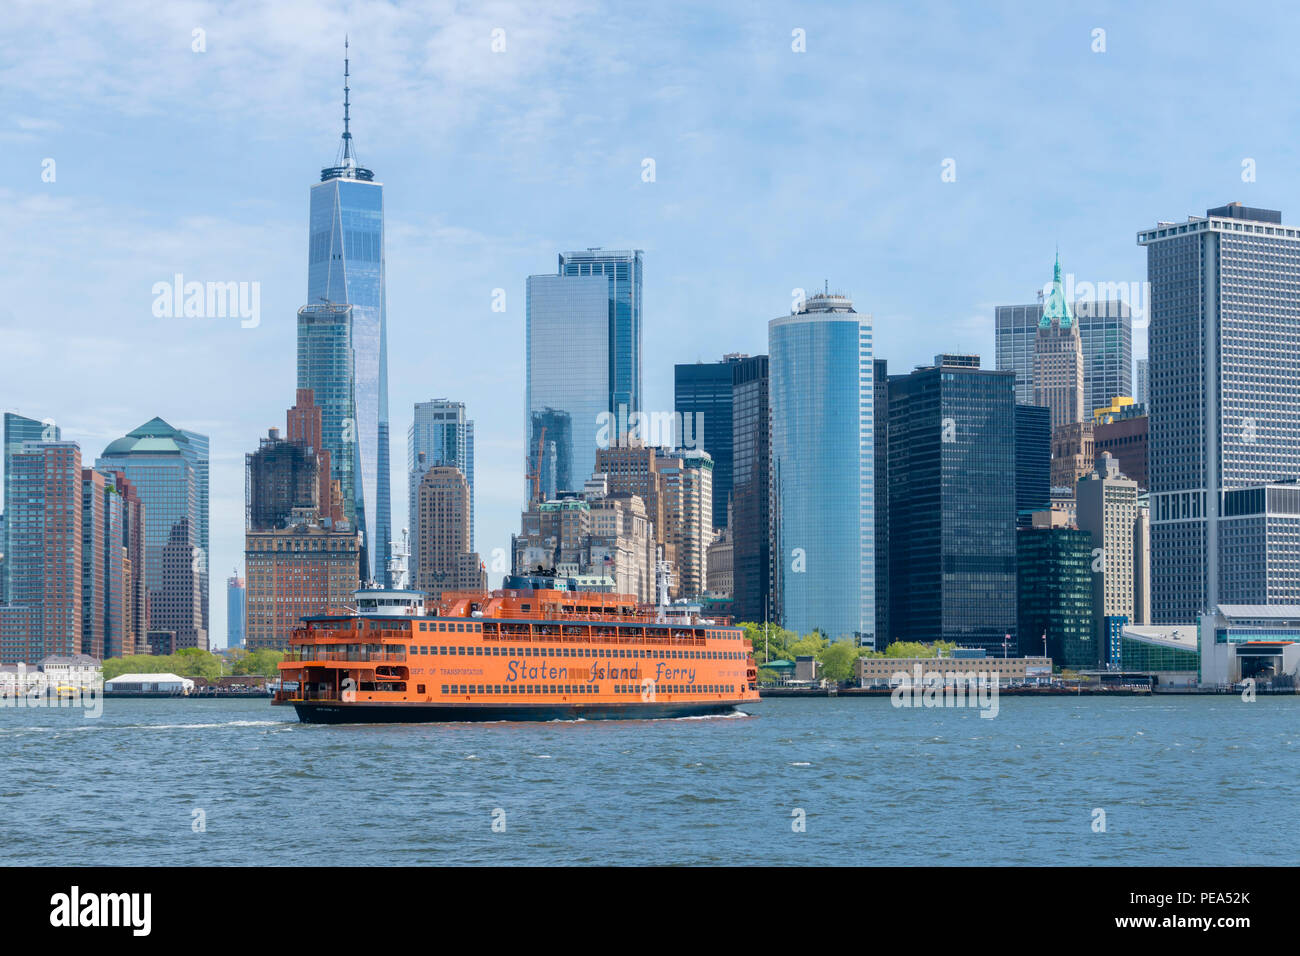 Staten Island Ferry naviguant vers le sud de Manhattan à New York City Photo Stock